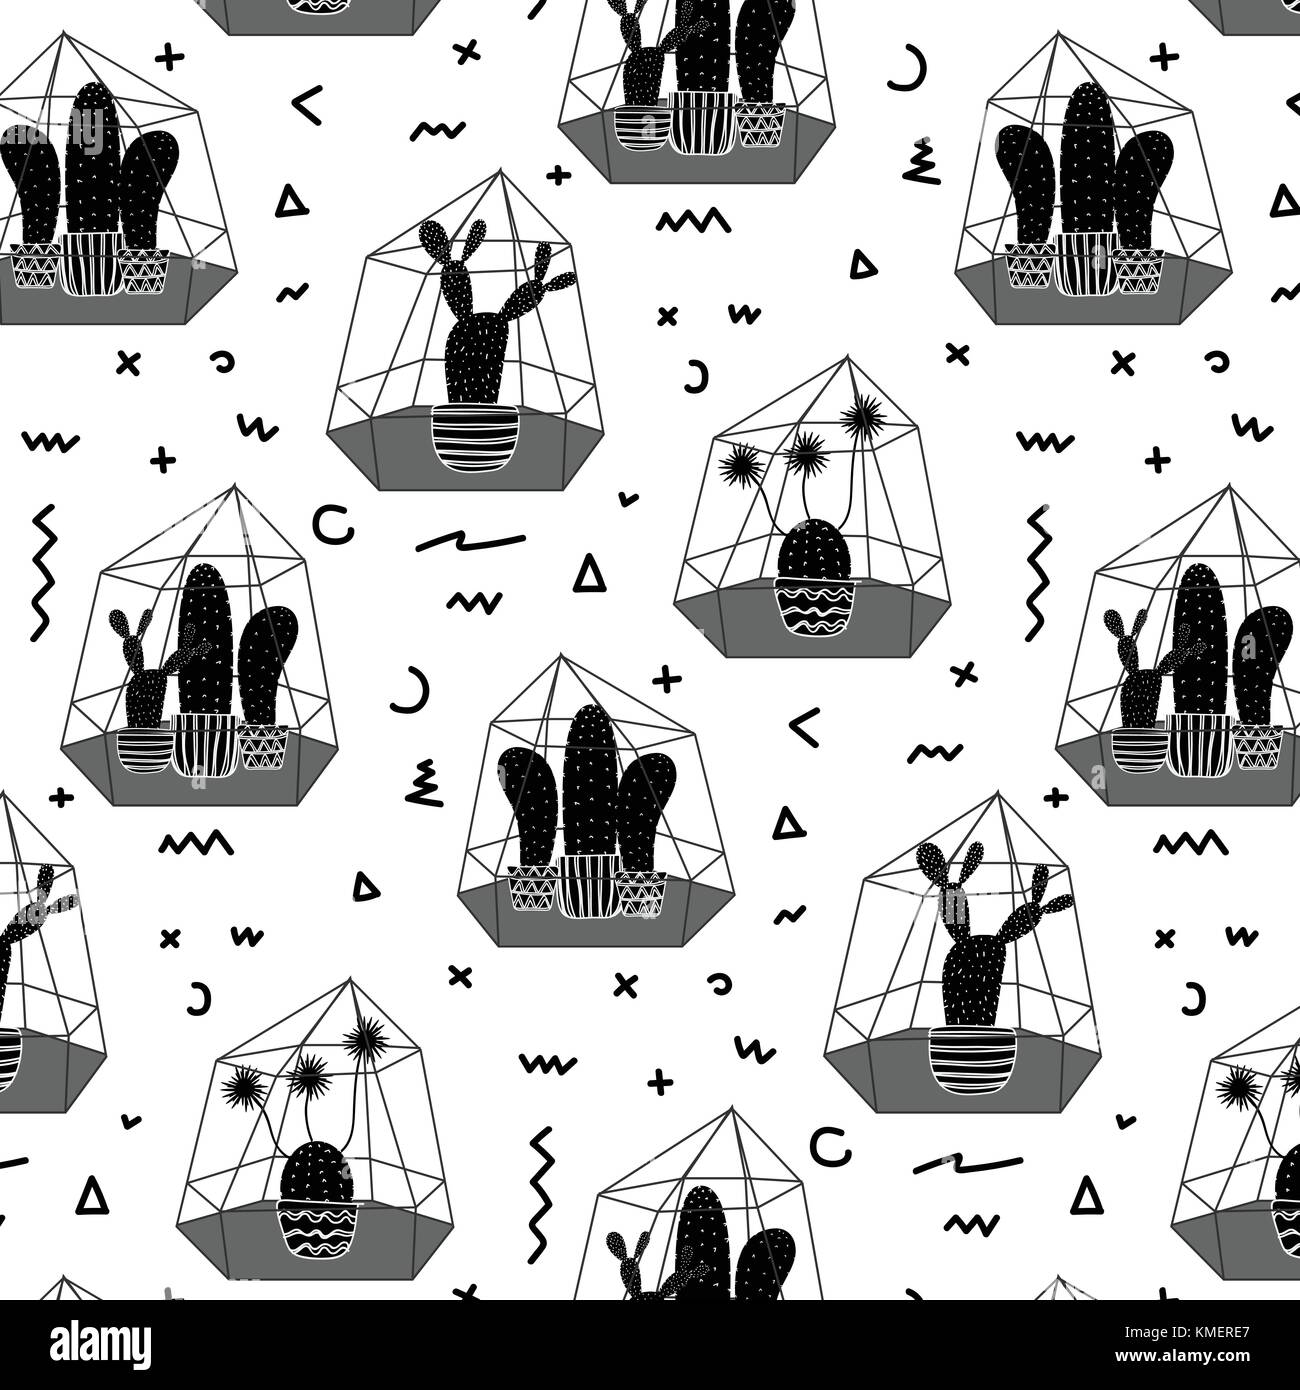 Cactus Vector Vector Vectors Black and White Stock Photos & Images ...